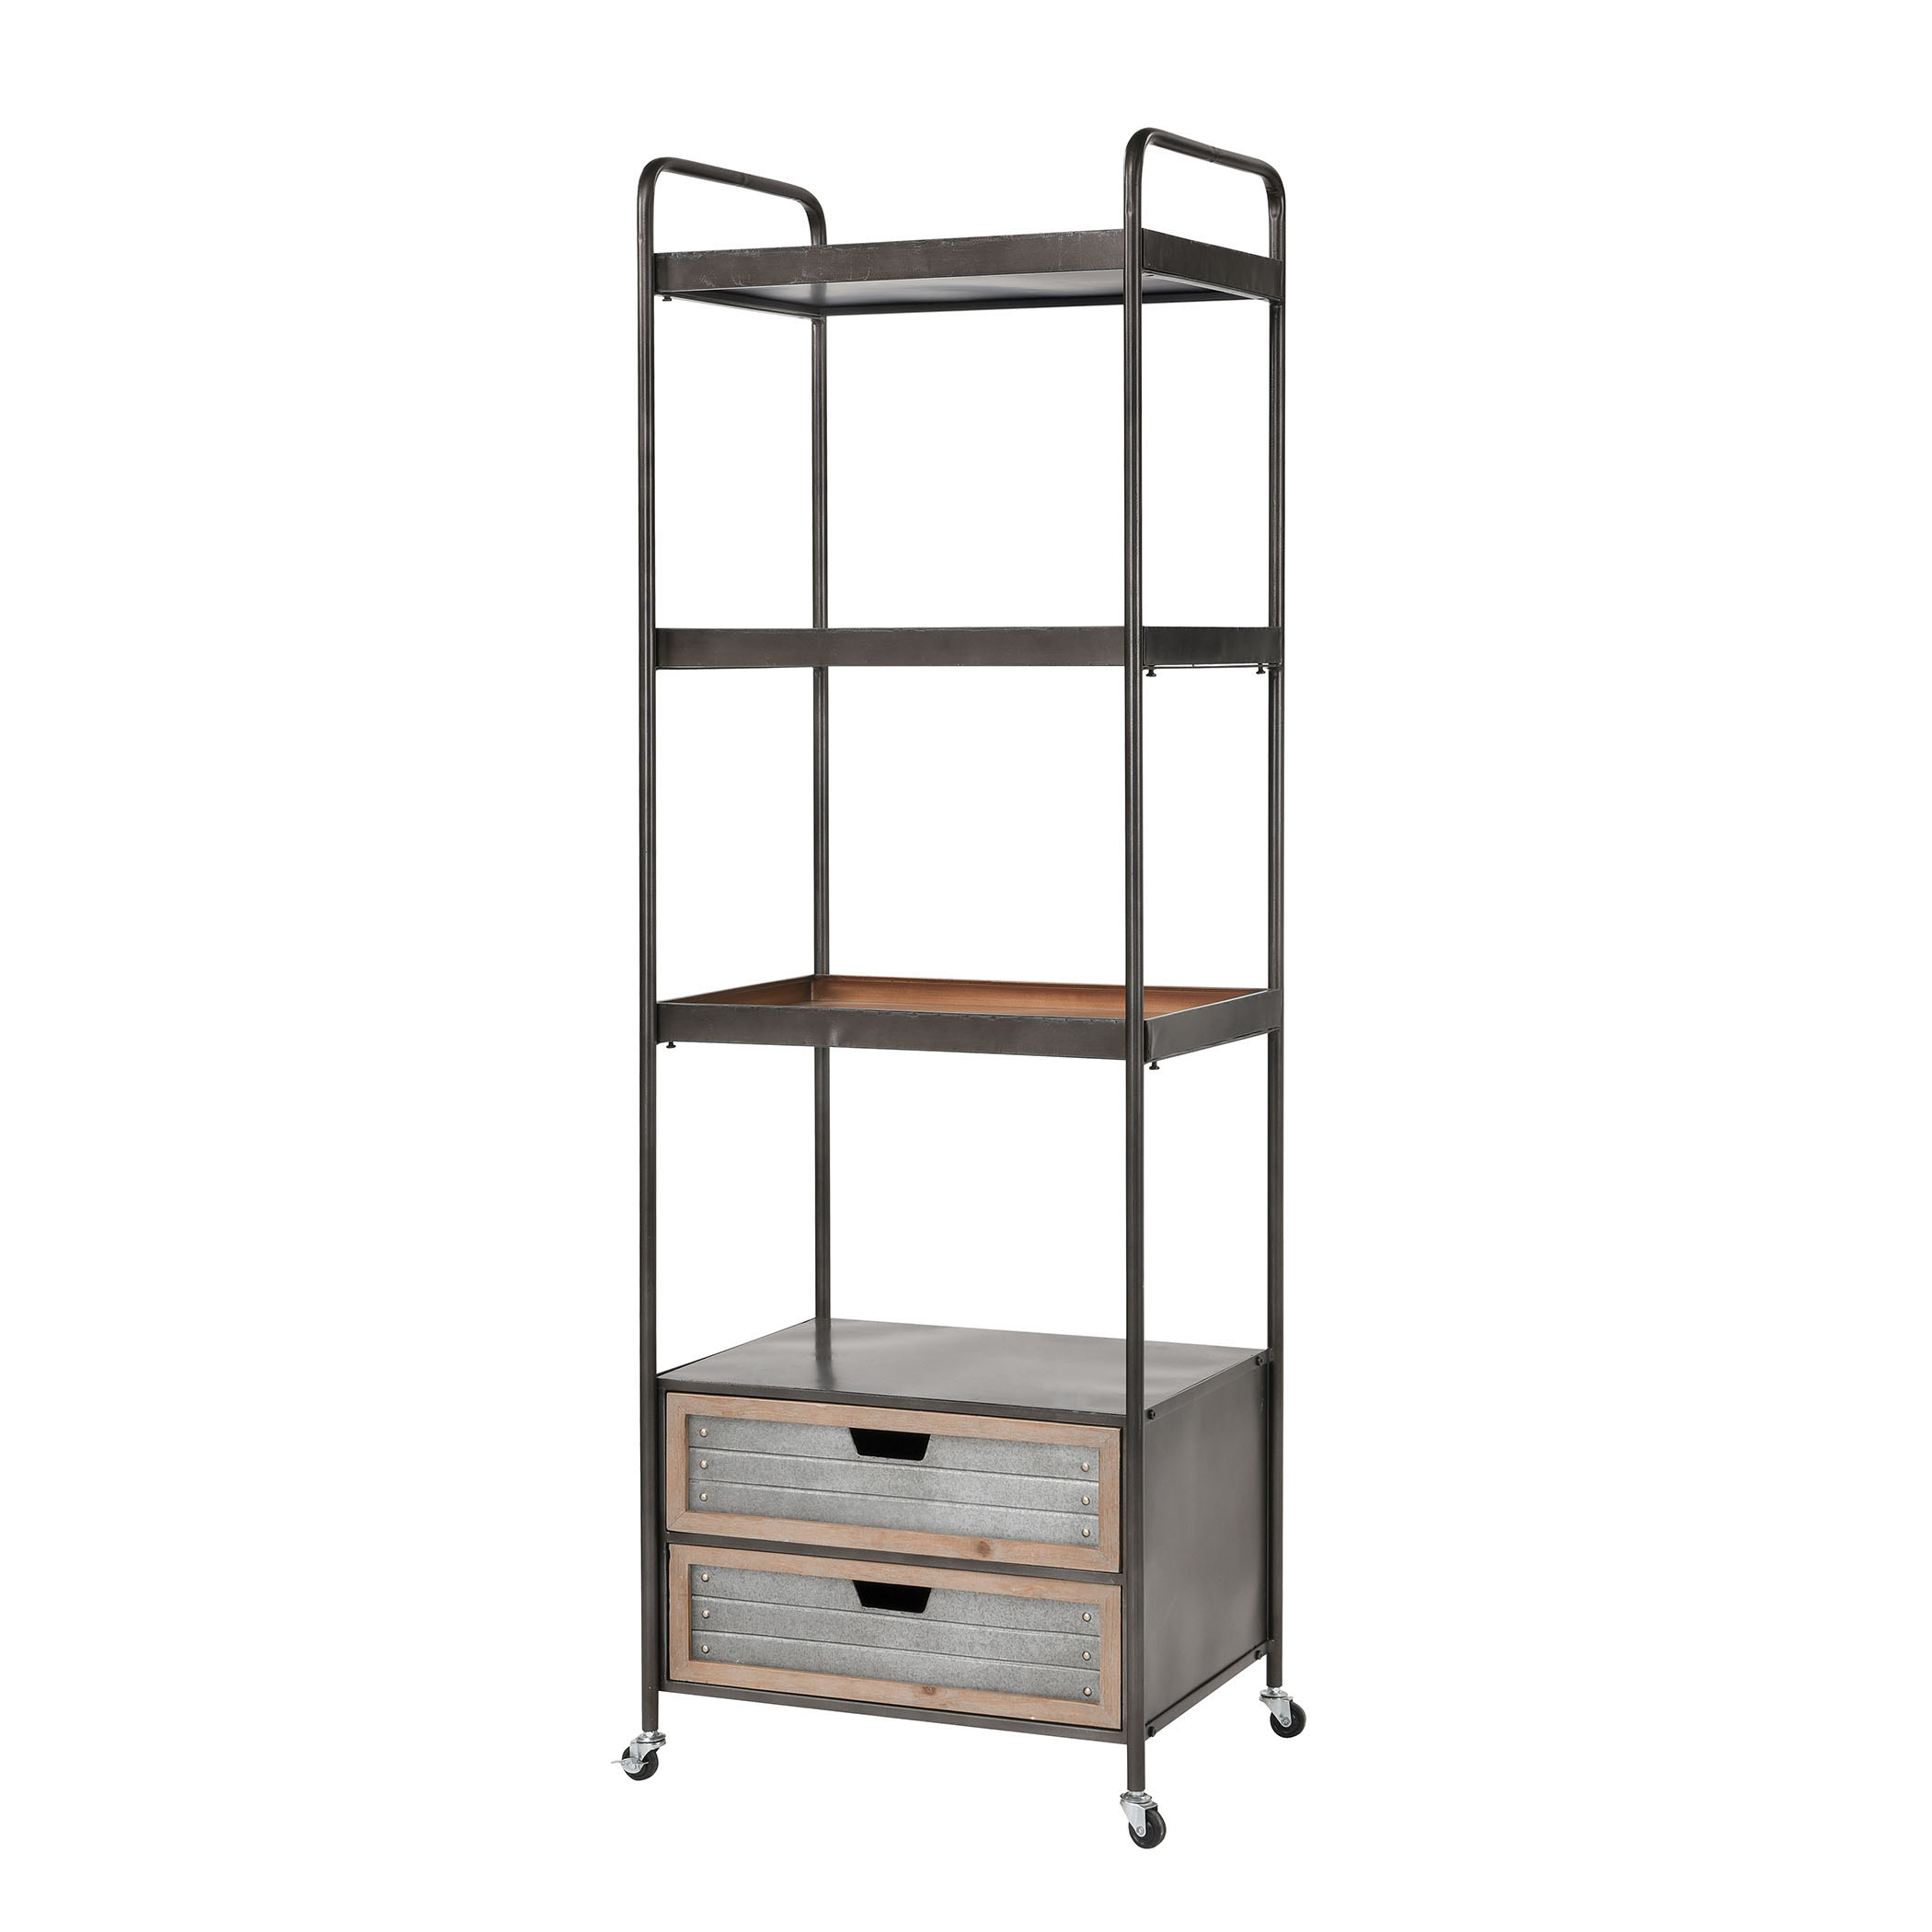 Whitepark Bay Bookshelf in Natural Fir Wood and Galvanized Steel | Elk Home